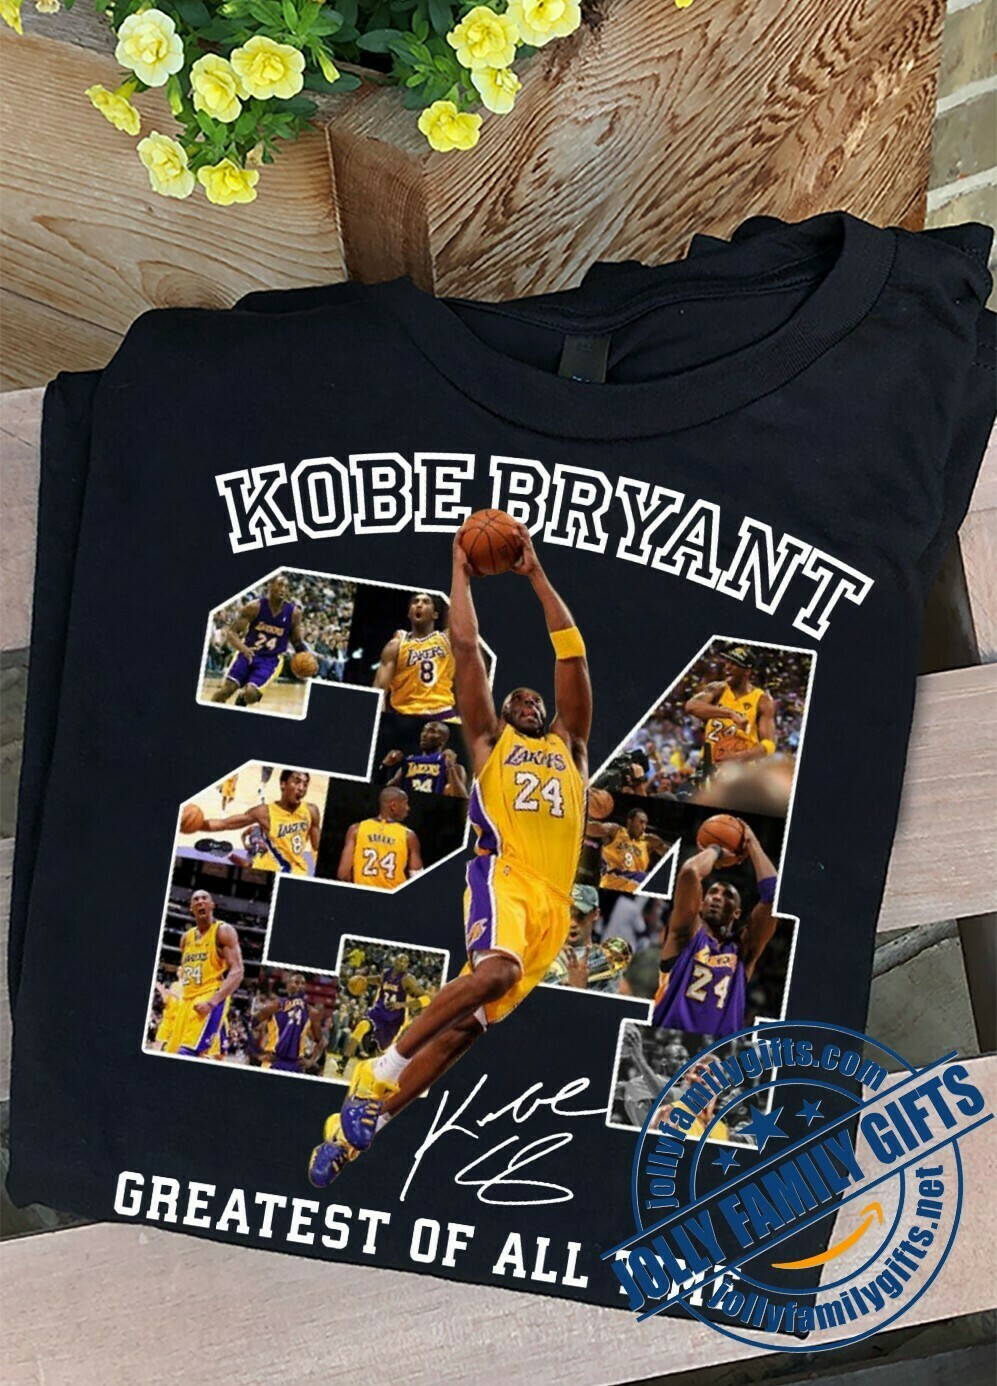 24 Black Mamba Kobe Bryant Greatest of all time legends never die signature Los Angeles Lakers thank you for the NBA memories  Unisex T-Shirt Hoodie Sweatshirt Sweater Plus Size for Ladies Women Men